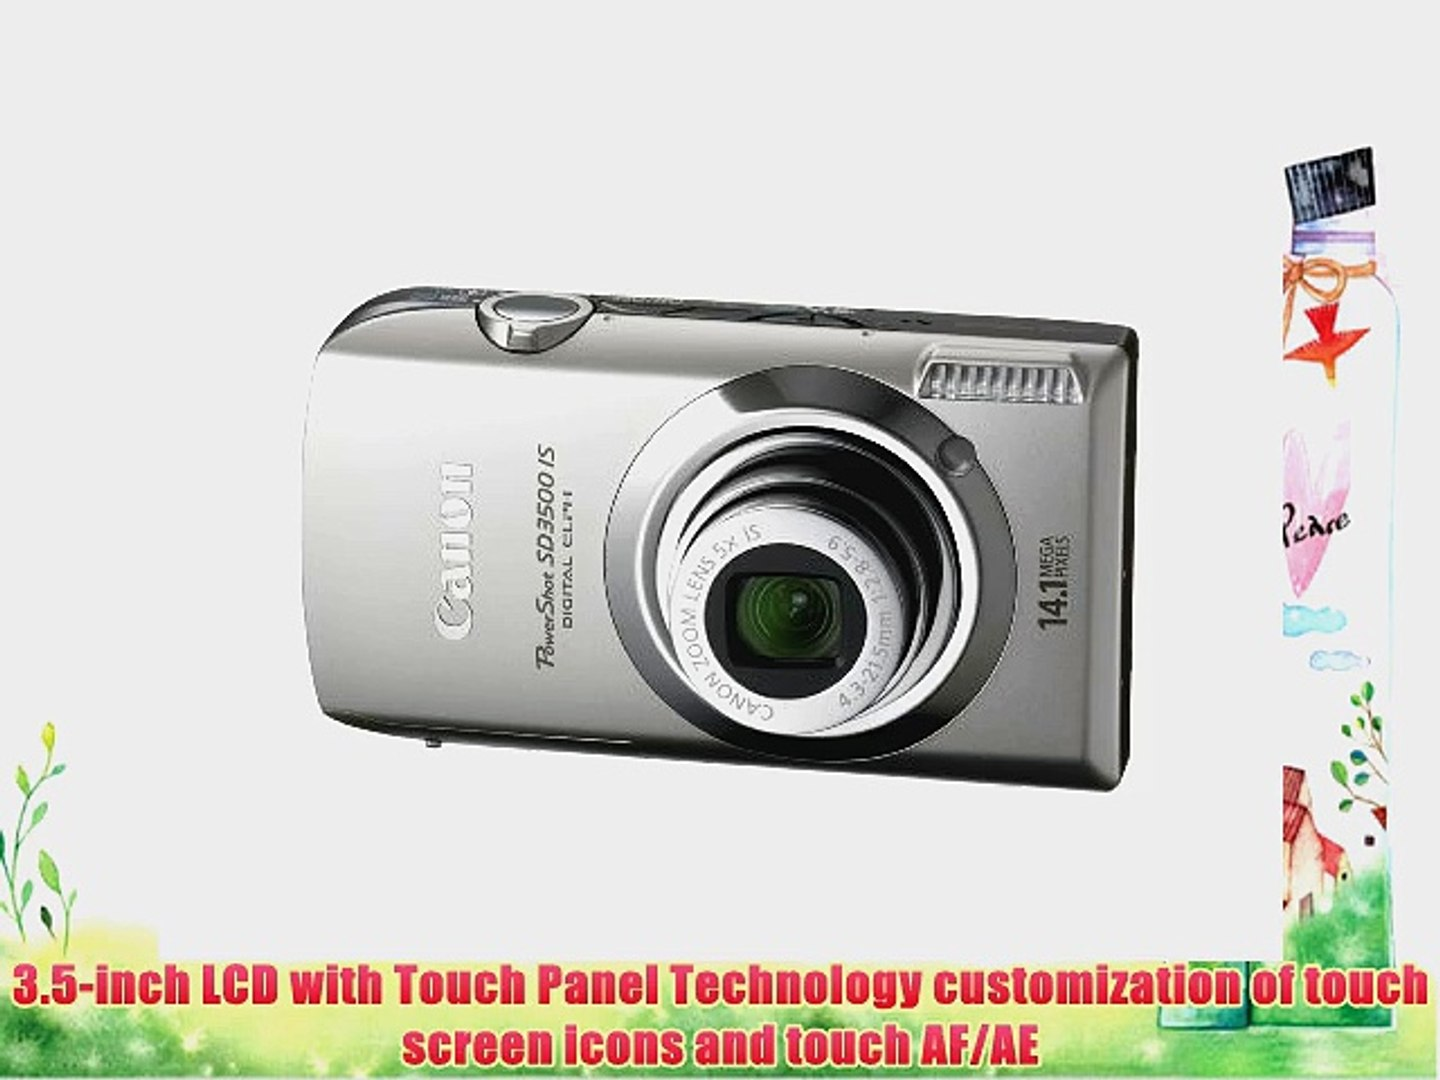 Canon PowerShot SD3500IS 14.1 MP Digital Camera with 3.5-Inch Touch Panel LCD and 5x Ultra